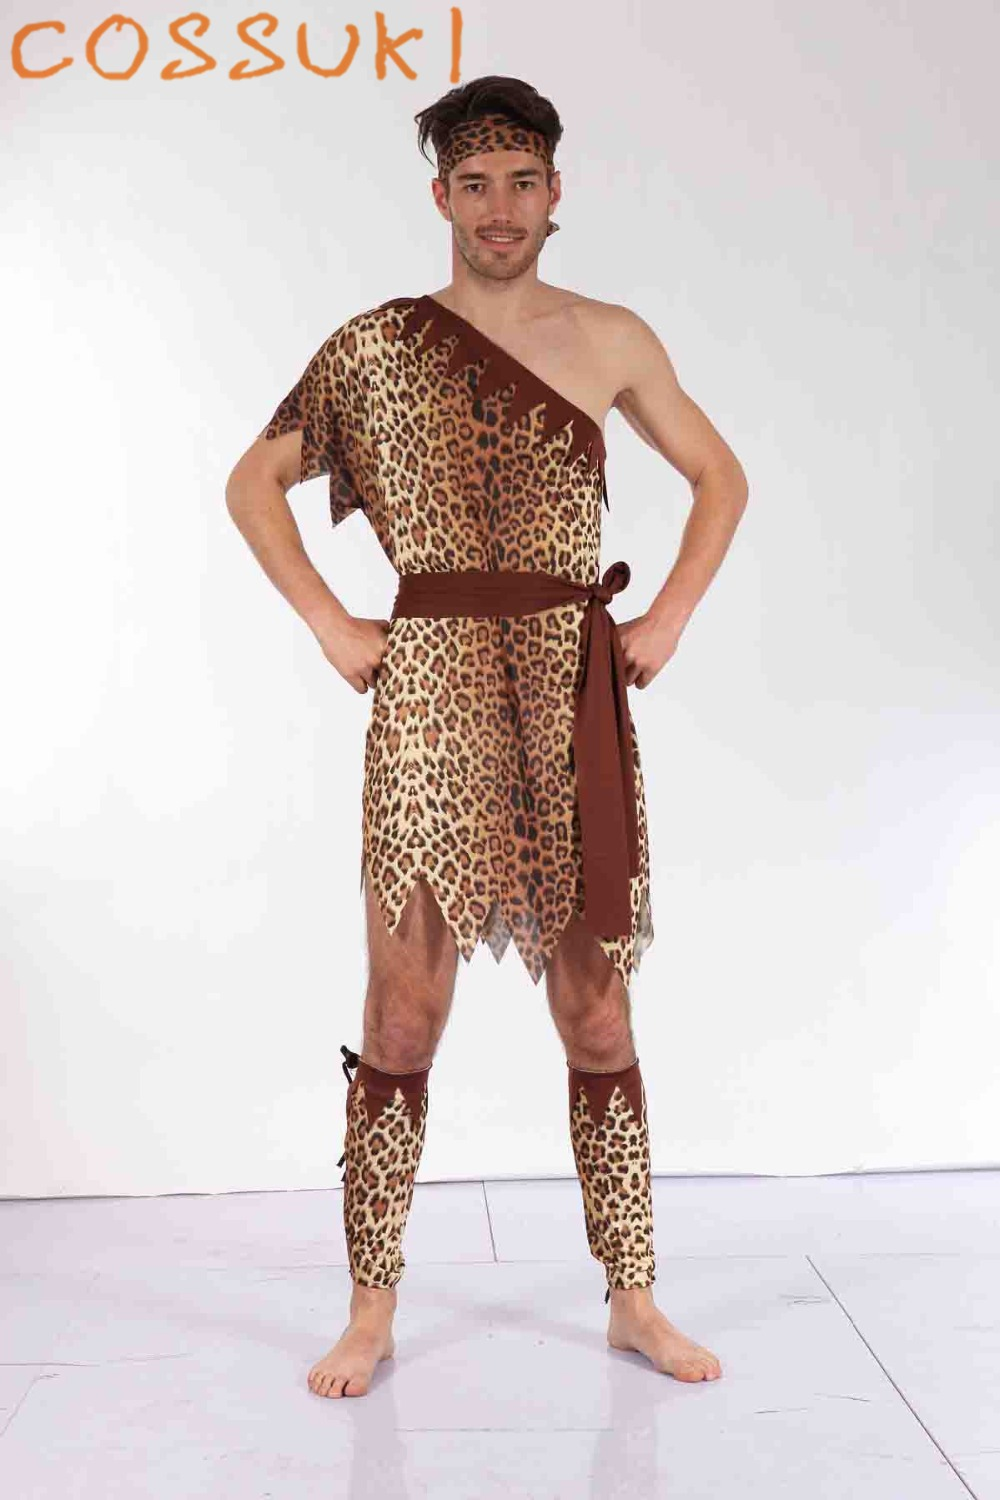 <font><b>Halloween</b></font> Adult <font><b>Men</b></font> <font><b>Sexy</b></font> Primitive Tribe Savage Leopard Print Cosplay <font><b>Costume</b></font> For Stage Performance Or Masquerade Party image